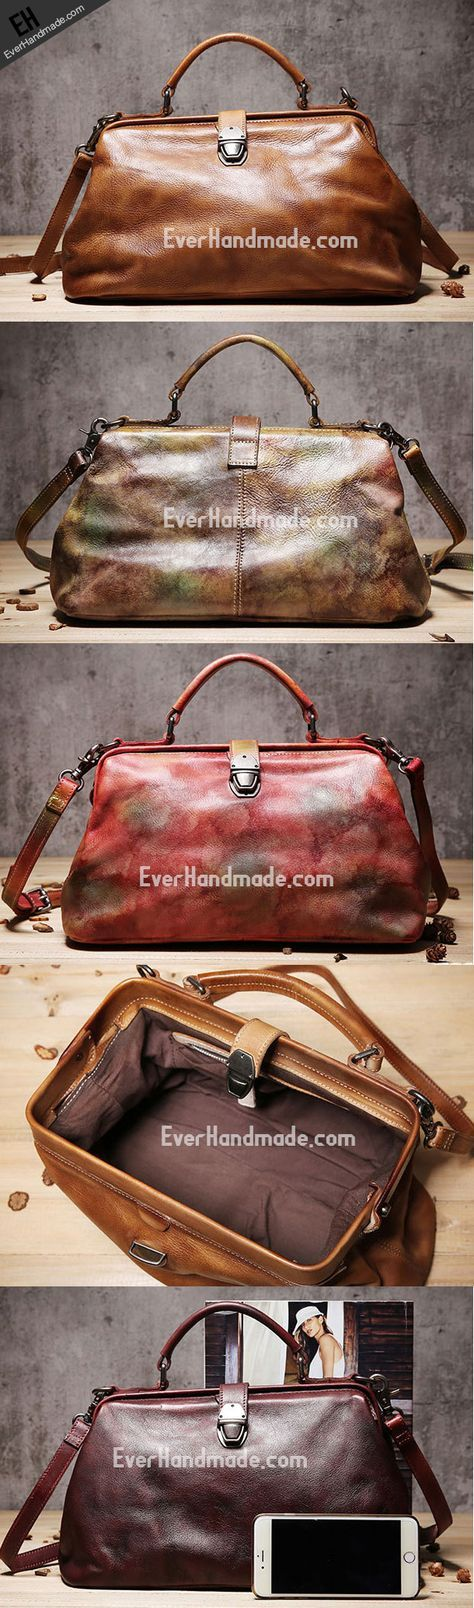 Handmade Leather doctor bag purse for women leather shoulder